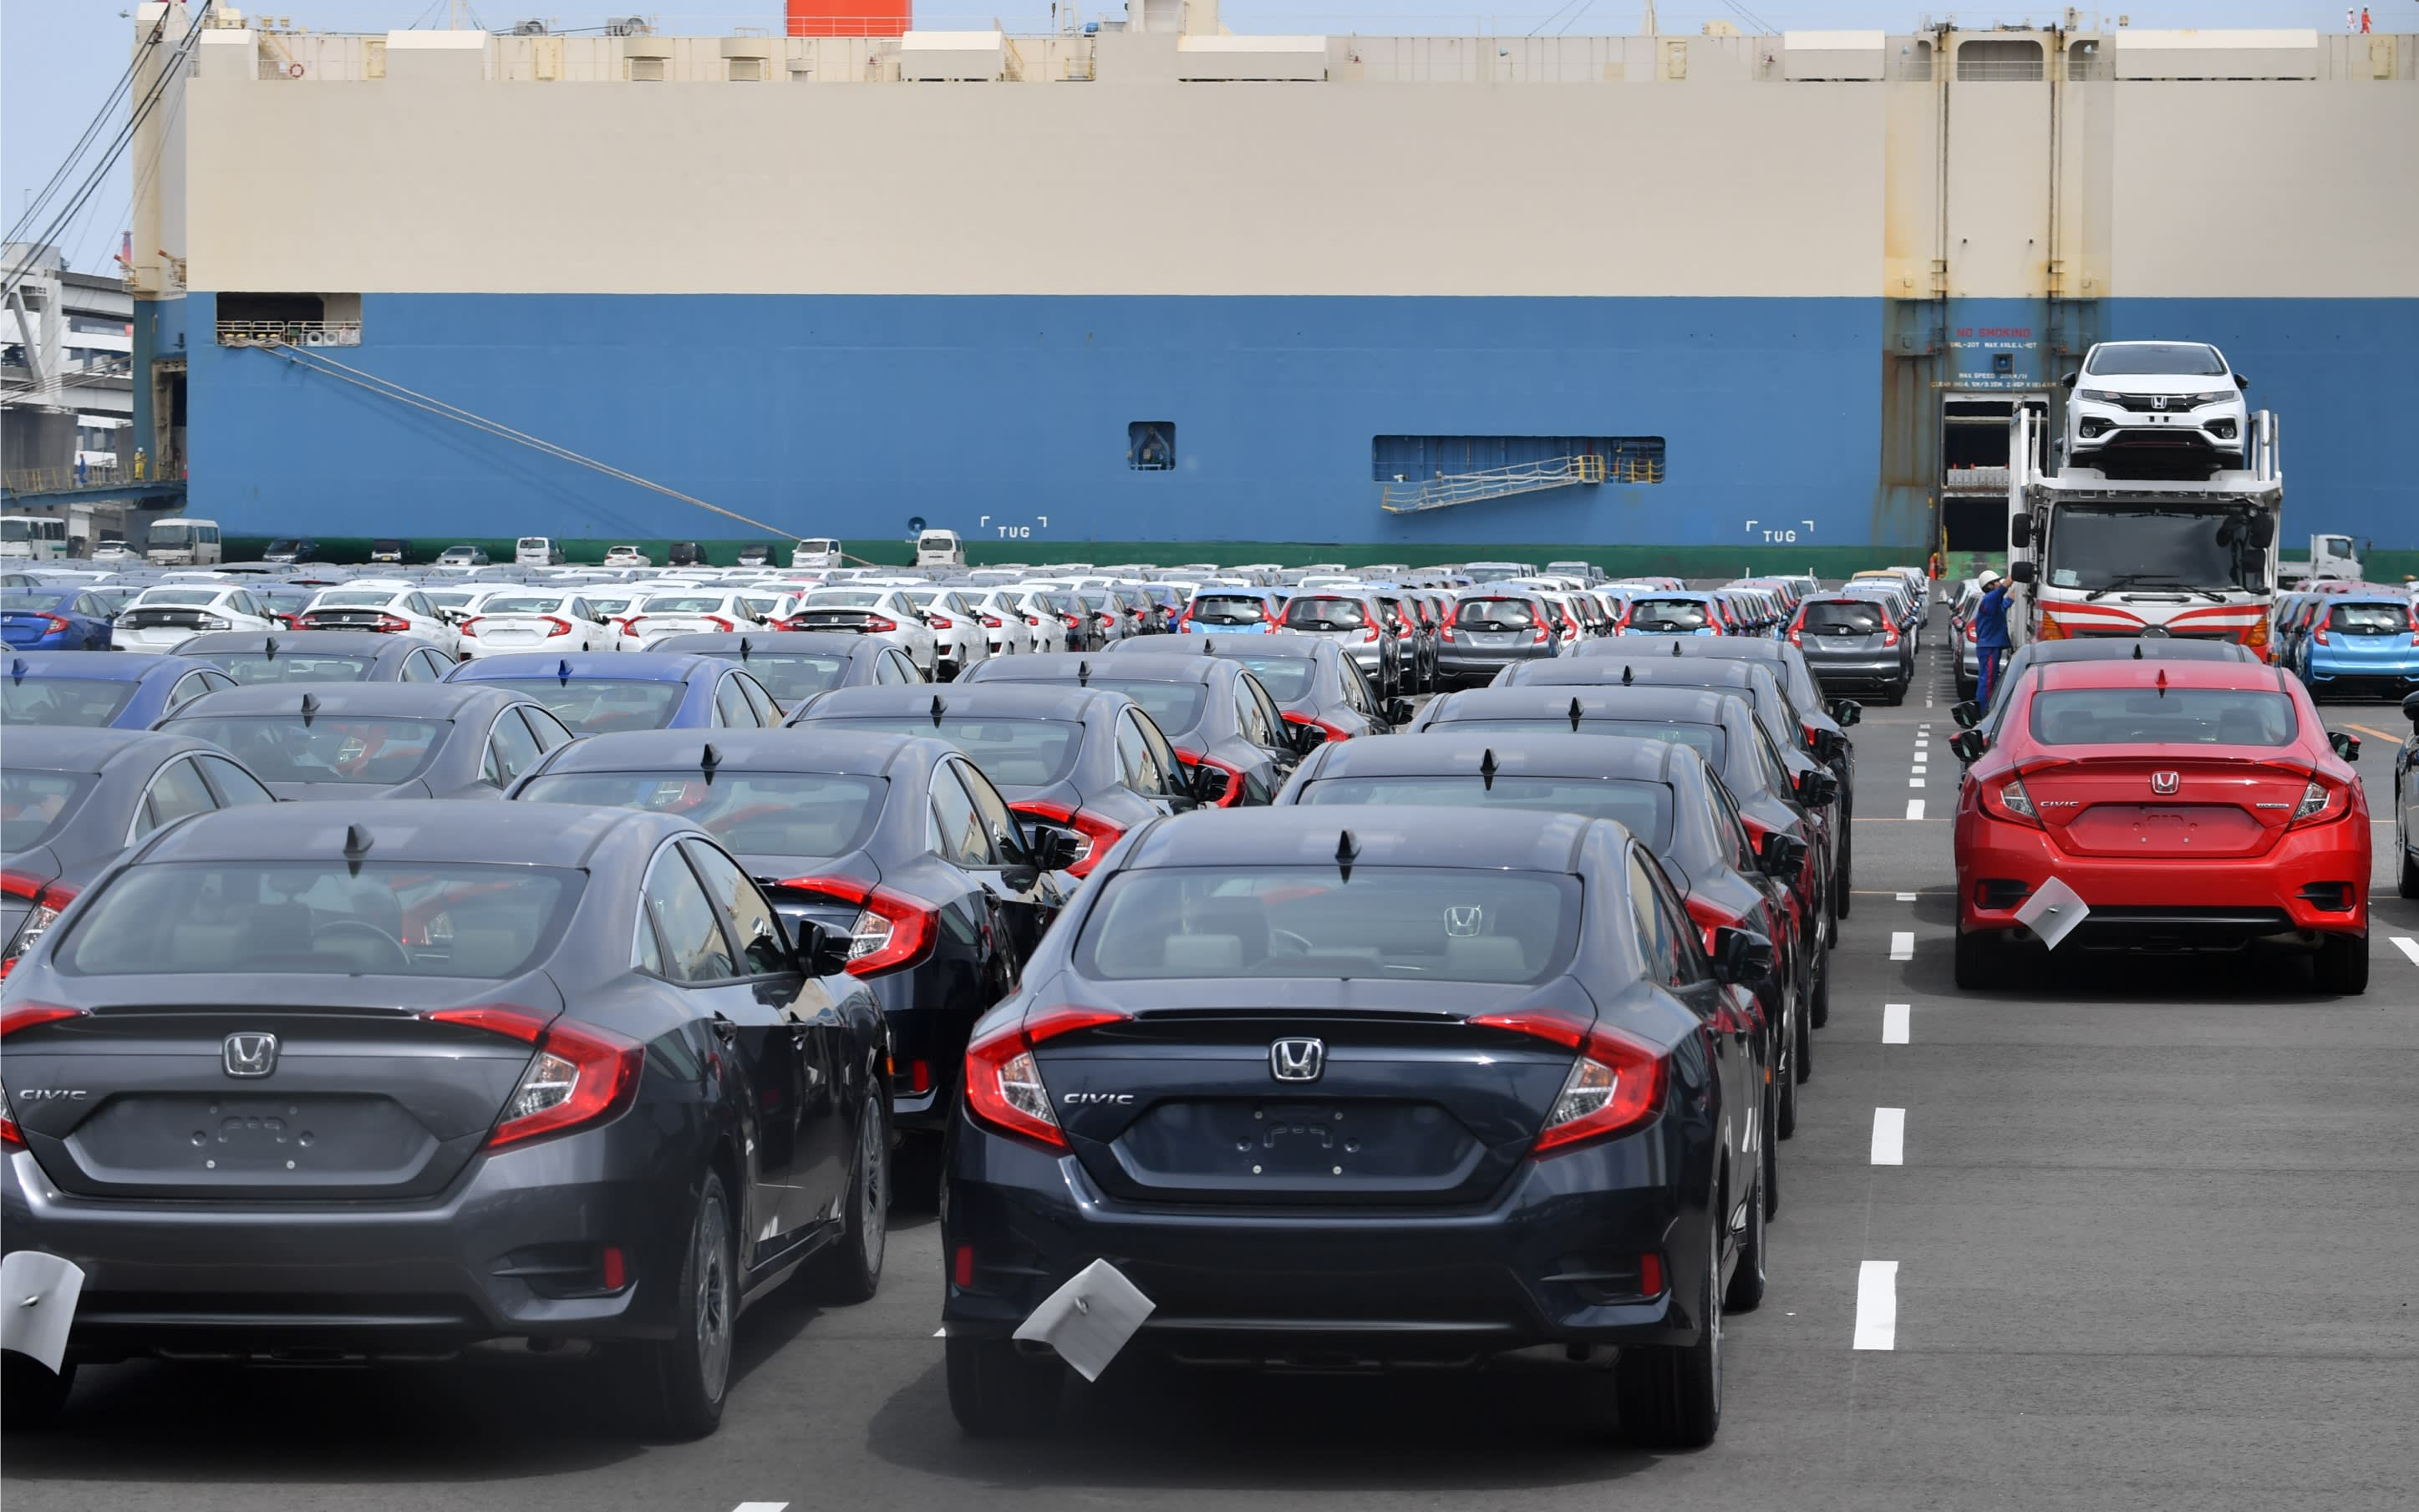 Japan and U.S. trade framework includes tariff on Japanese cars